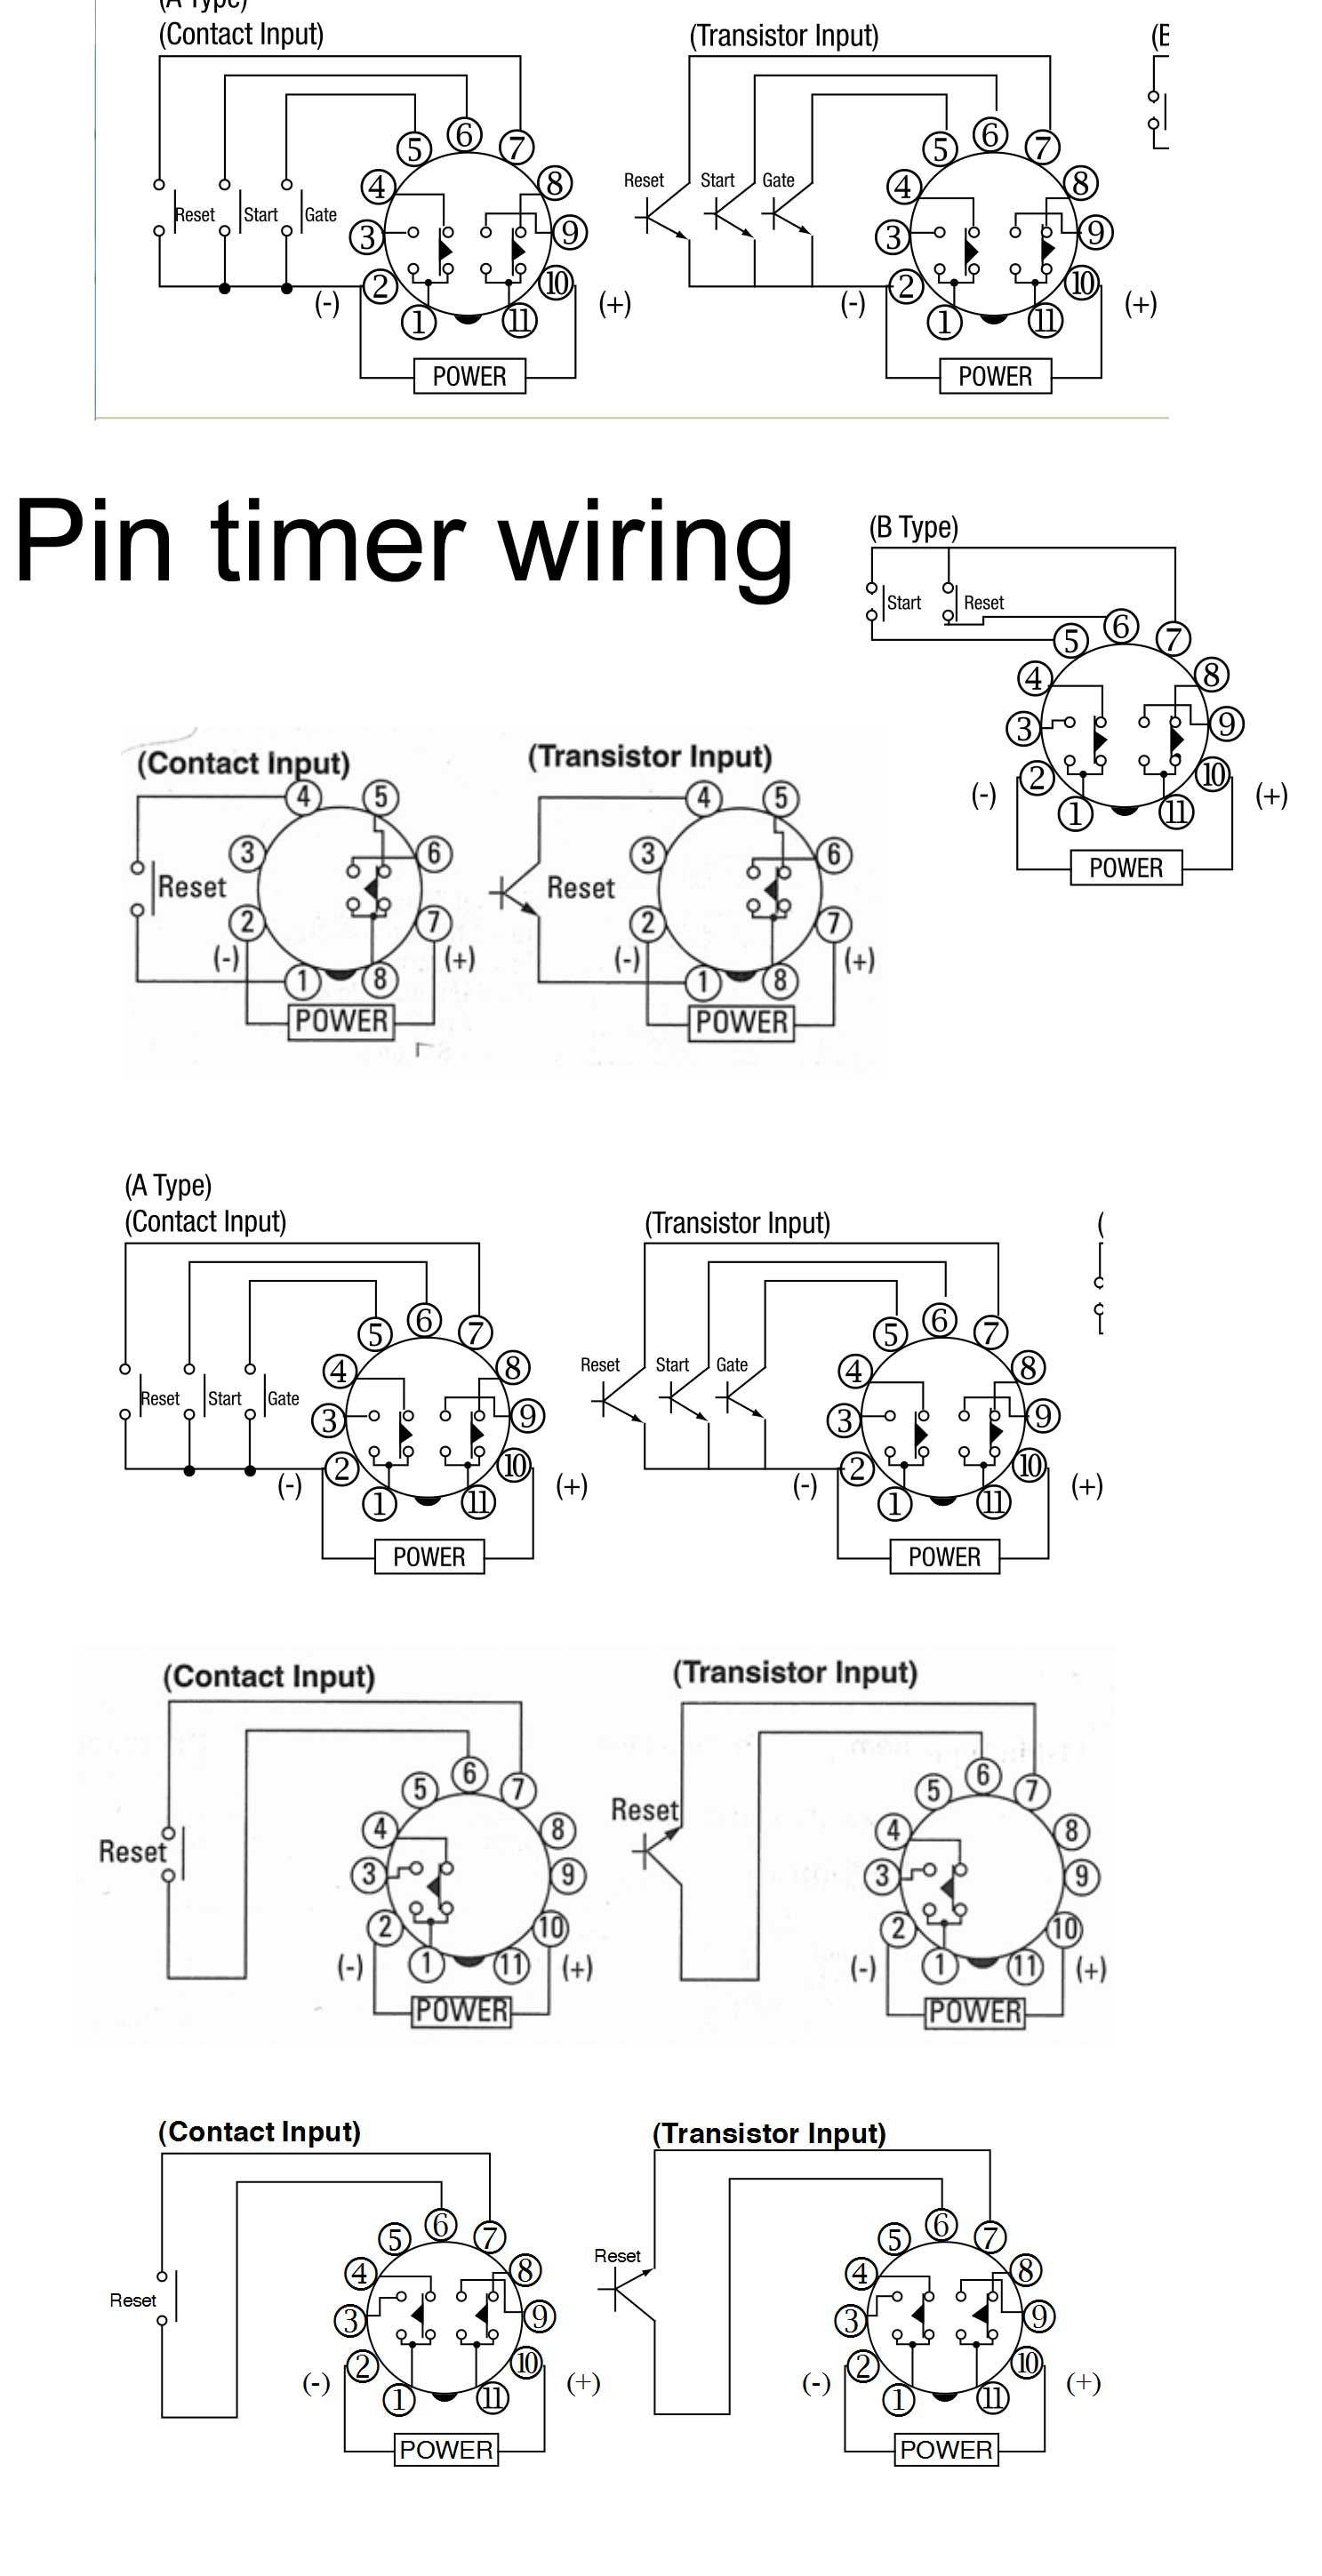 omron h3cr a8 wiring diagram Download-Omron H3ca A Wiring Diagram Unique Series Wiring Diagram Timer Wiring Diagrams Schematics 18-t